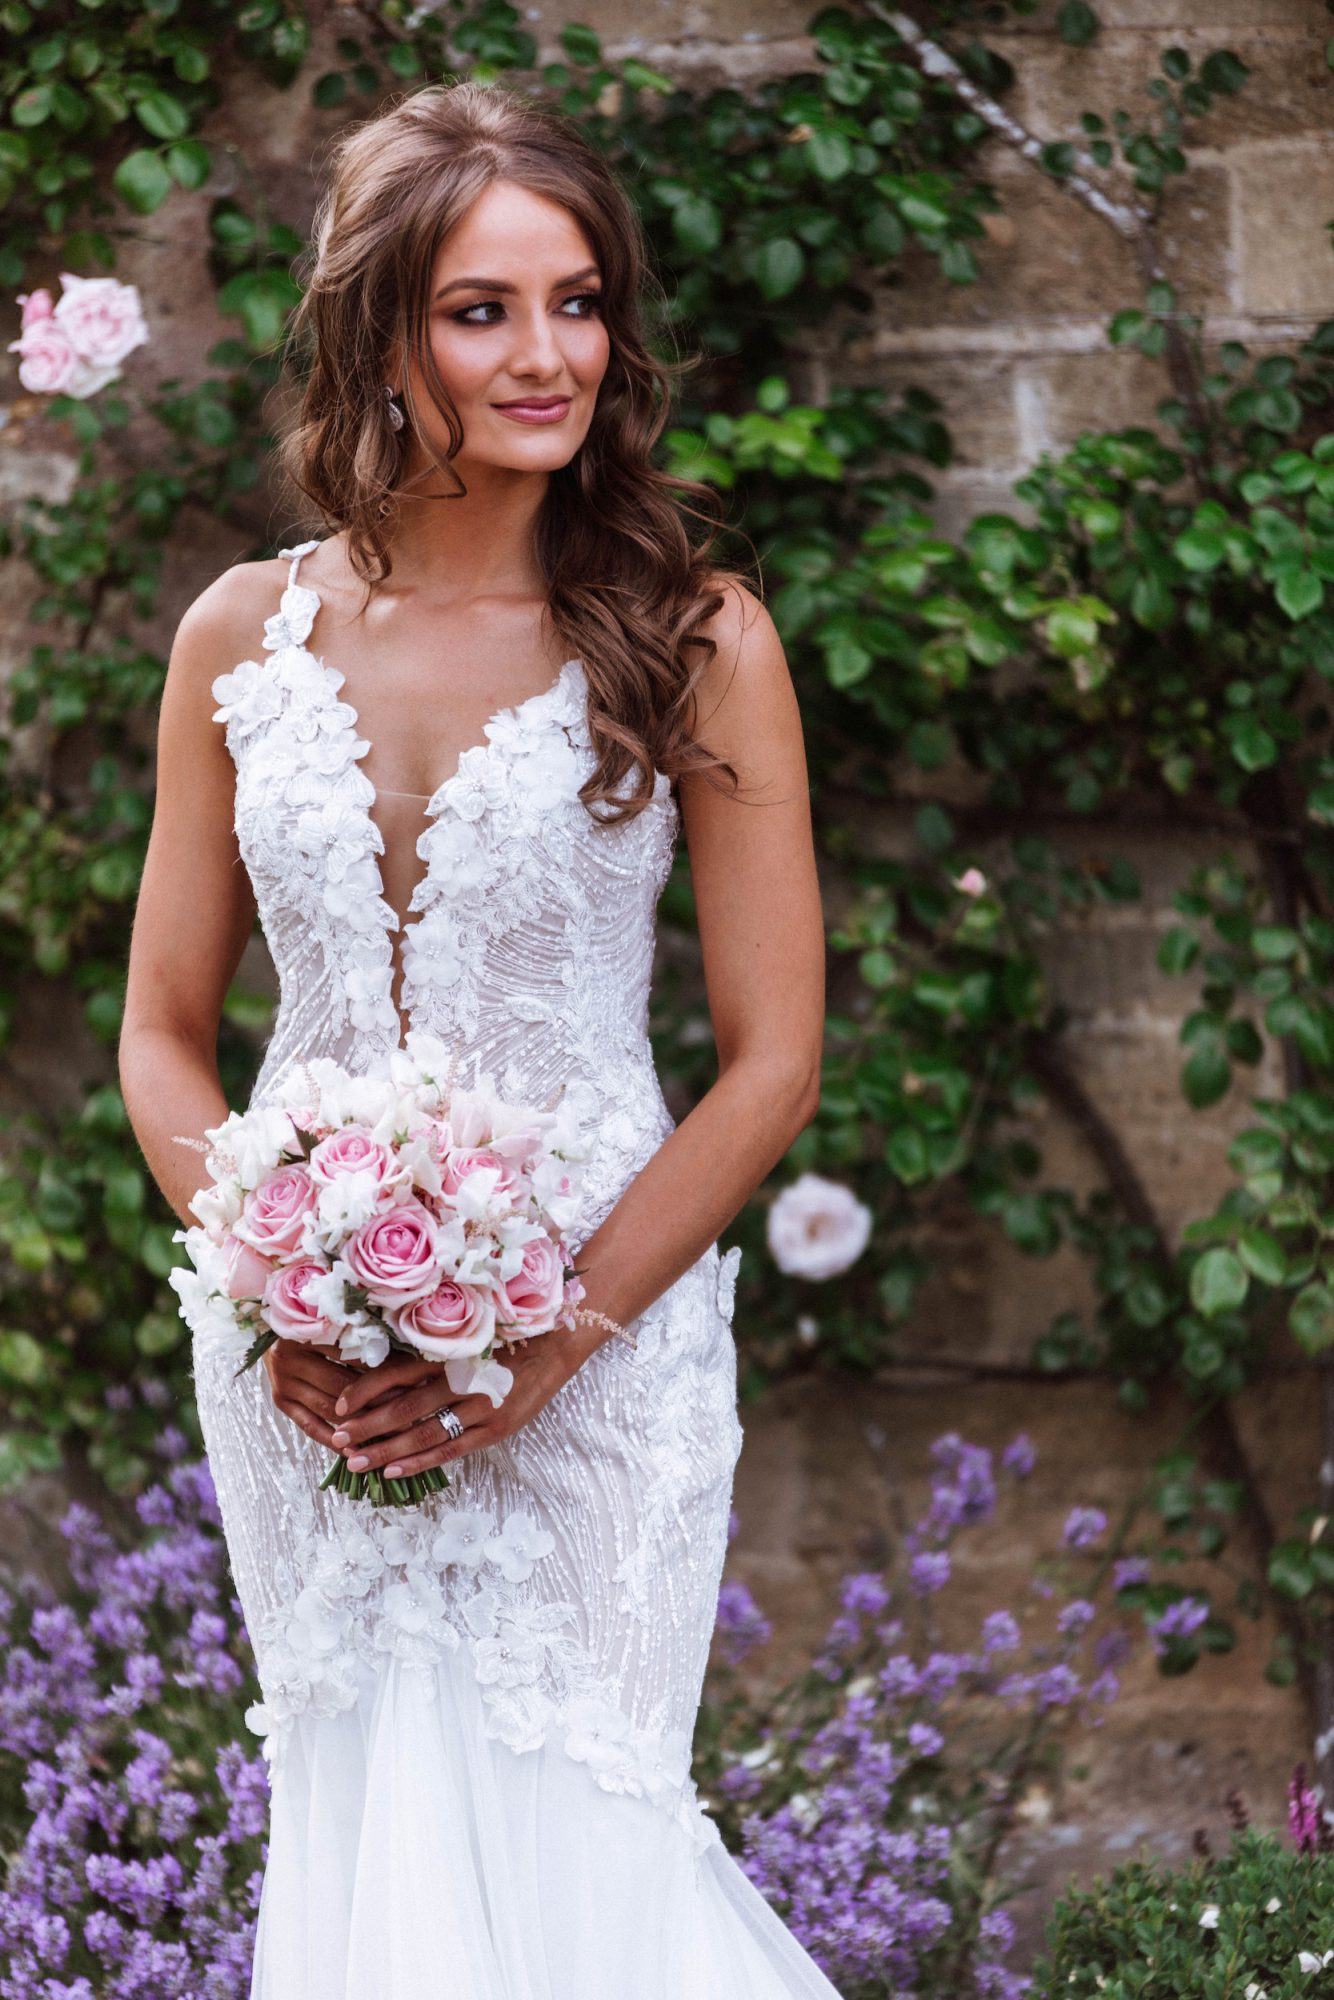 Bridal Hair in Hampshire | Hampshire Bride in beautiful lace dress | photograph by Cooper Photography